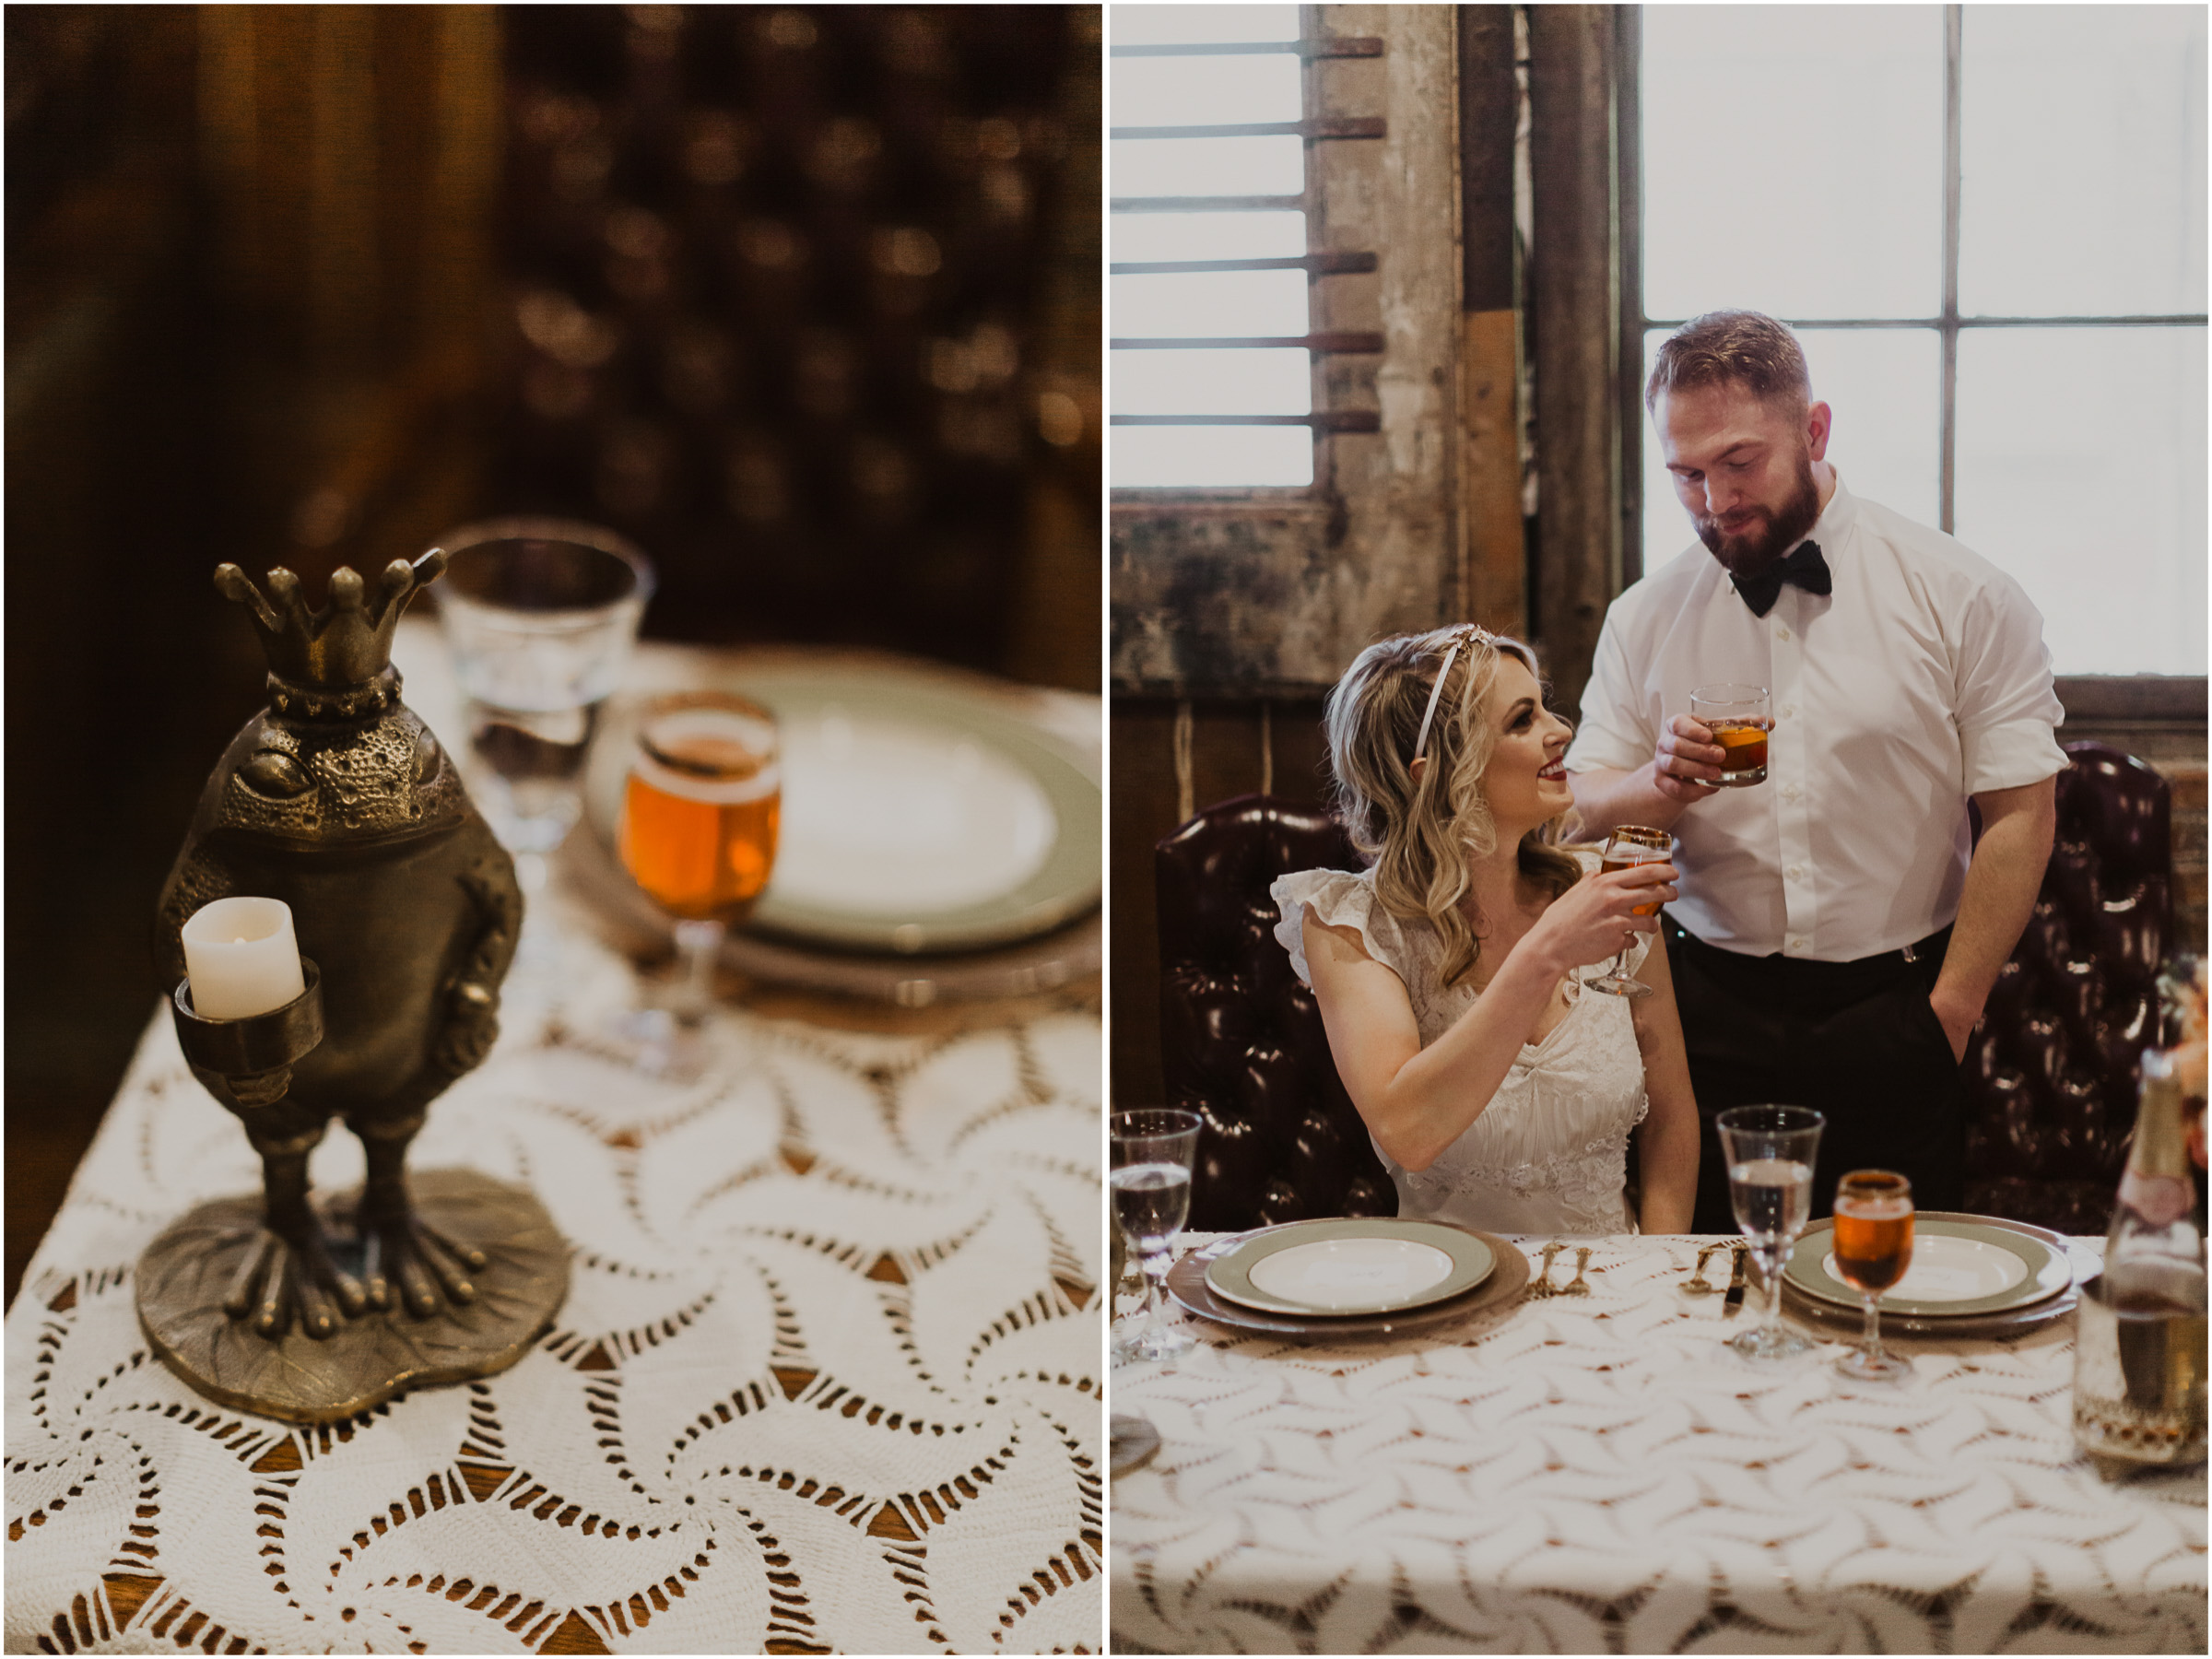 alyssa barletter photography styled shoot wedding inspiration kansas city west bottoms photographer motorcycle edgy intimate-7.jpg